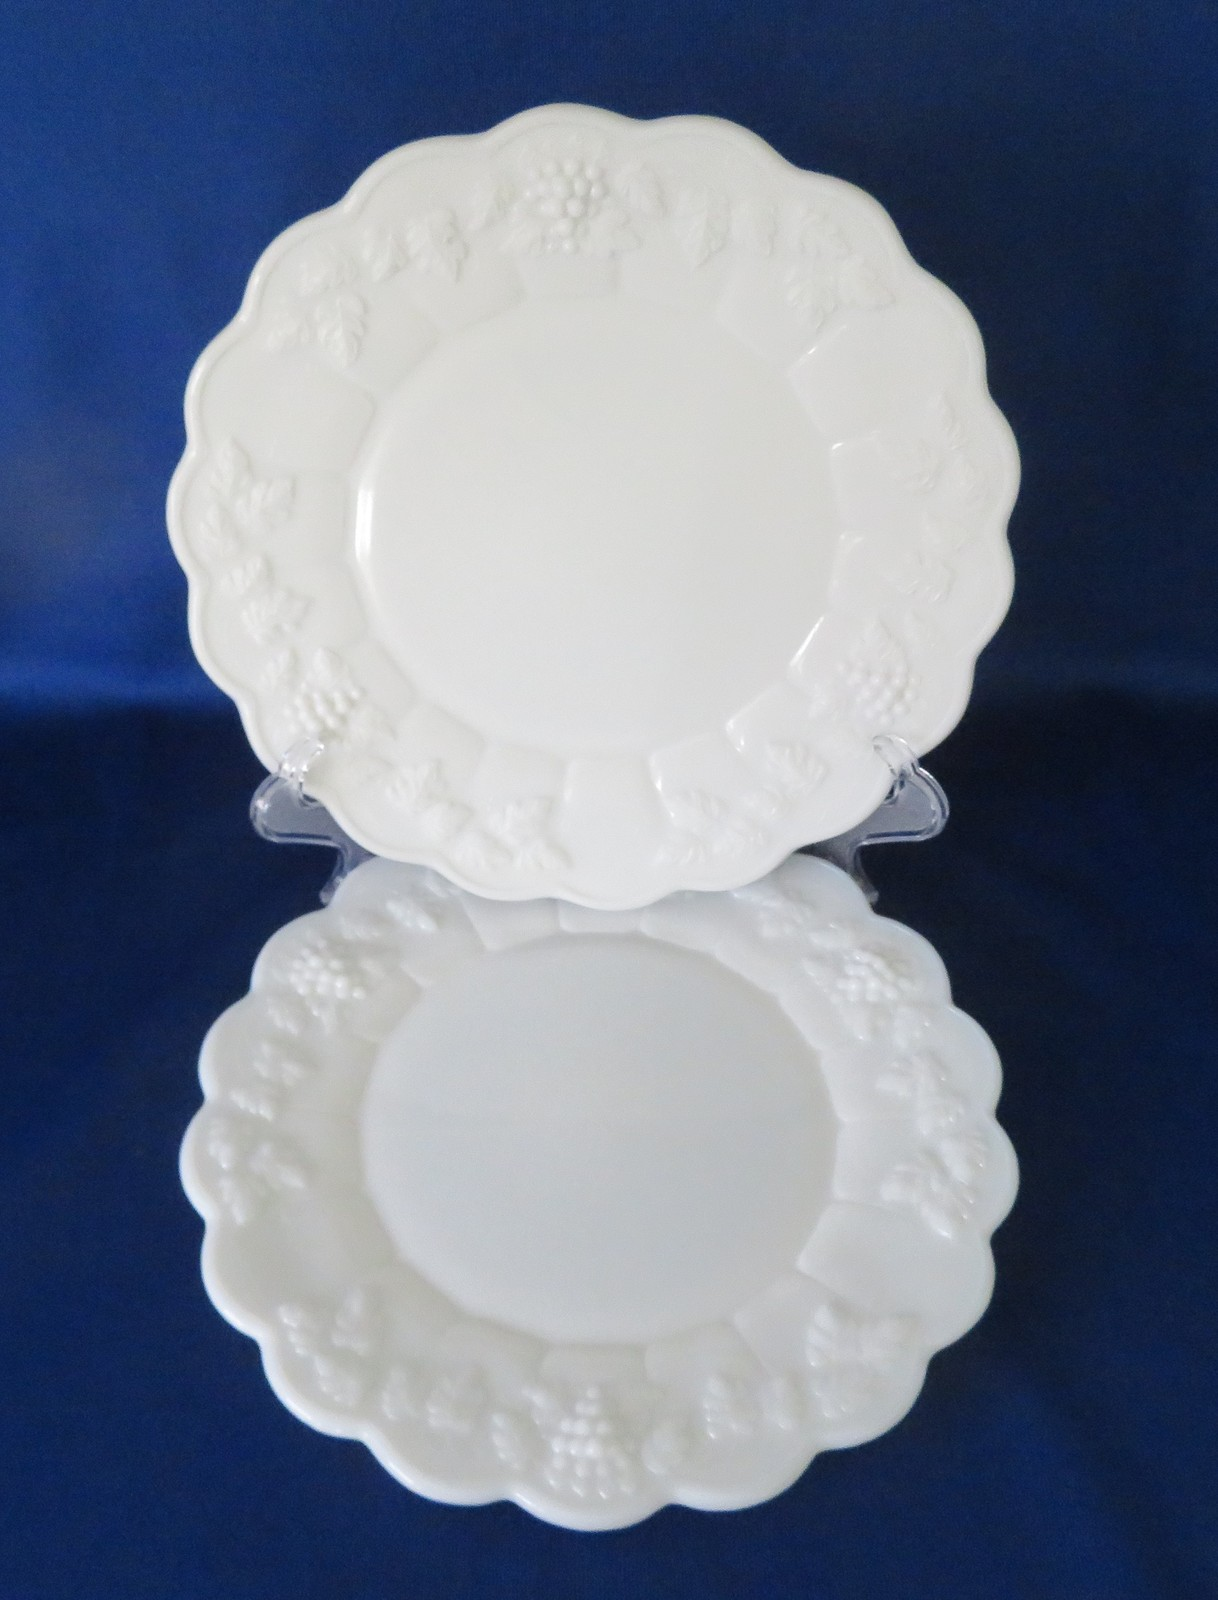 "Primary image for Westmoreland, Paneled Grape 10 1/2"" Dinner Plates, PG-81"